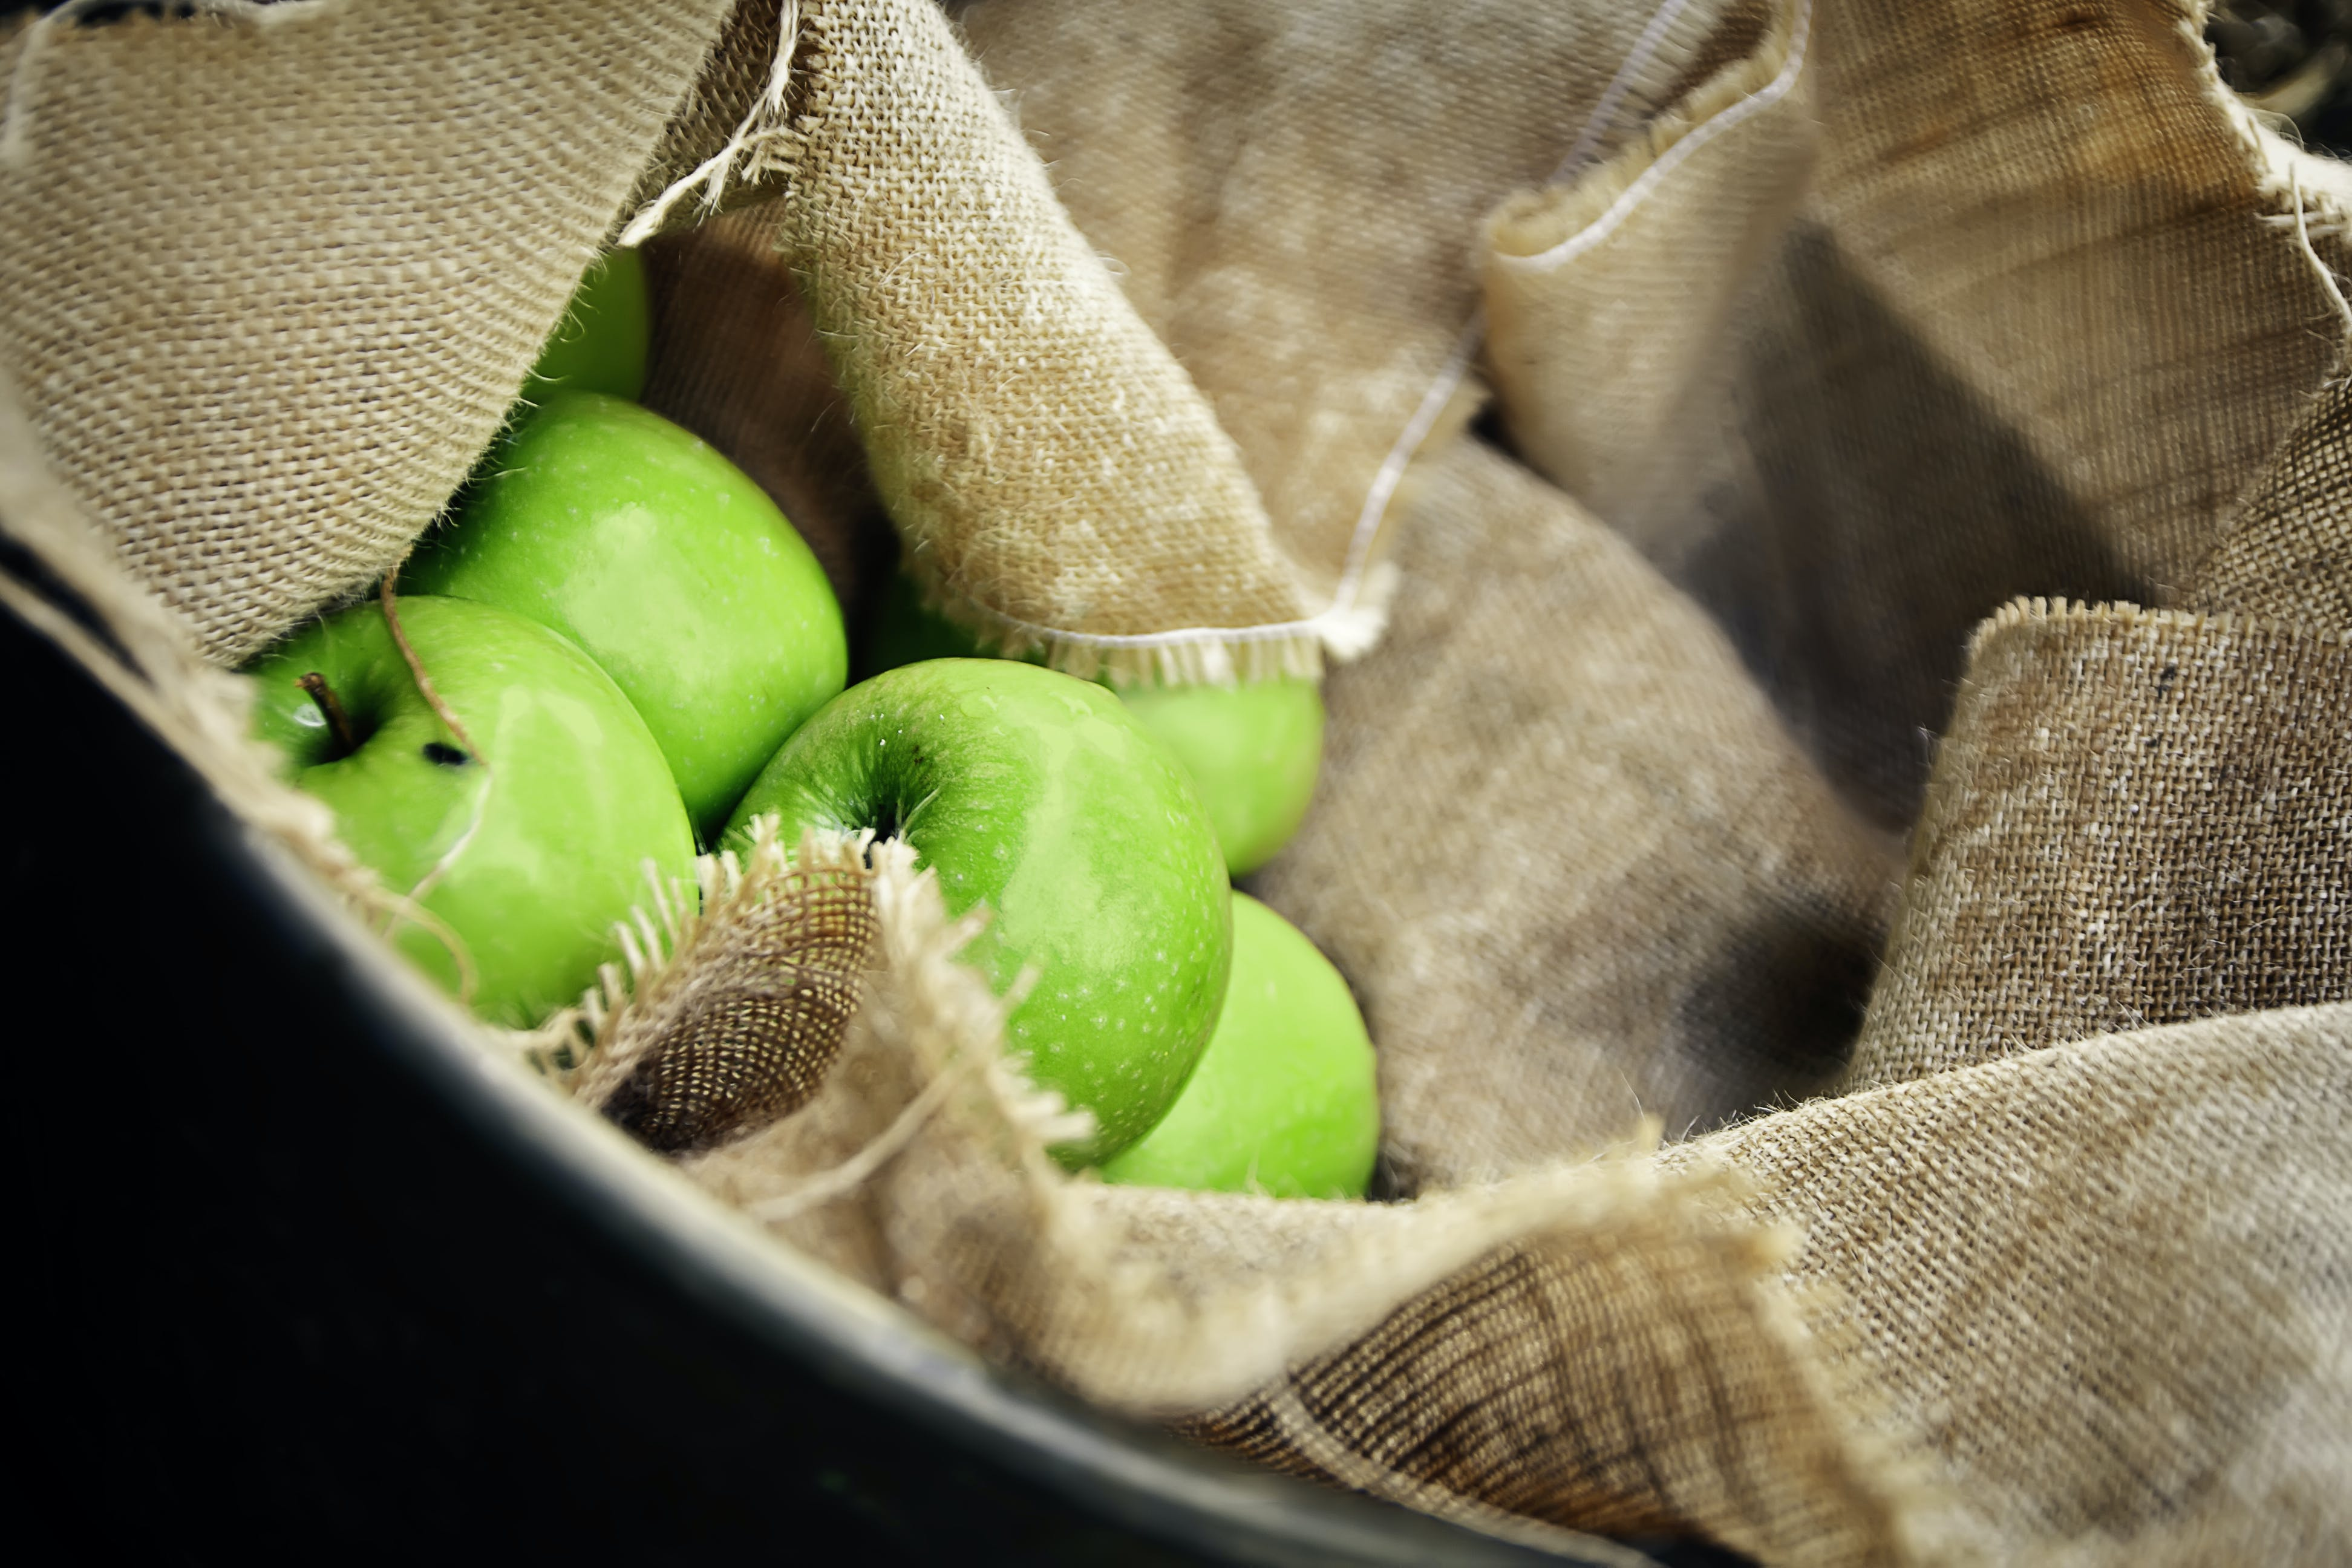 Macro Shot Photo of Green Apples